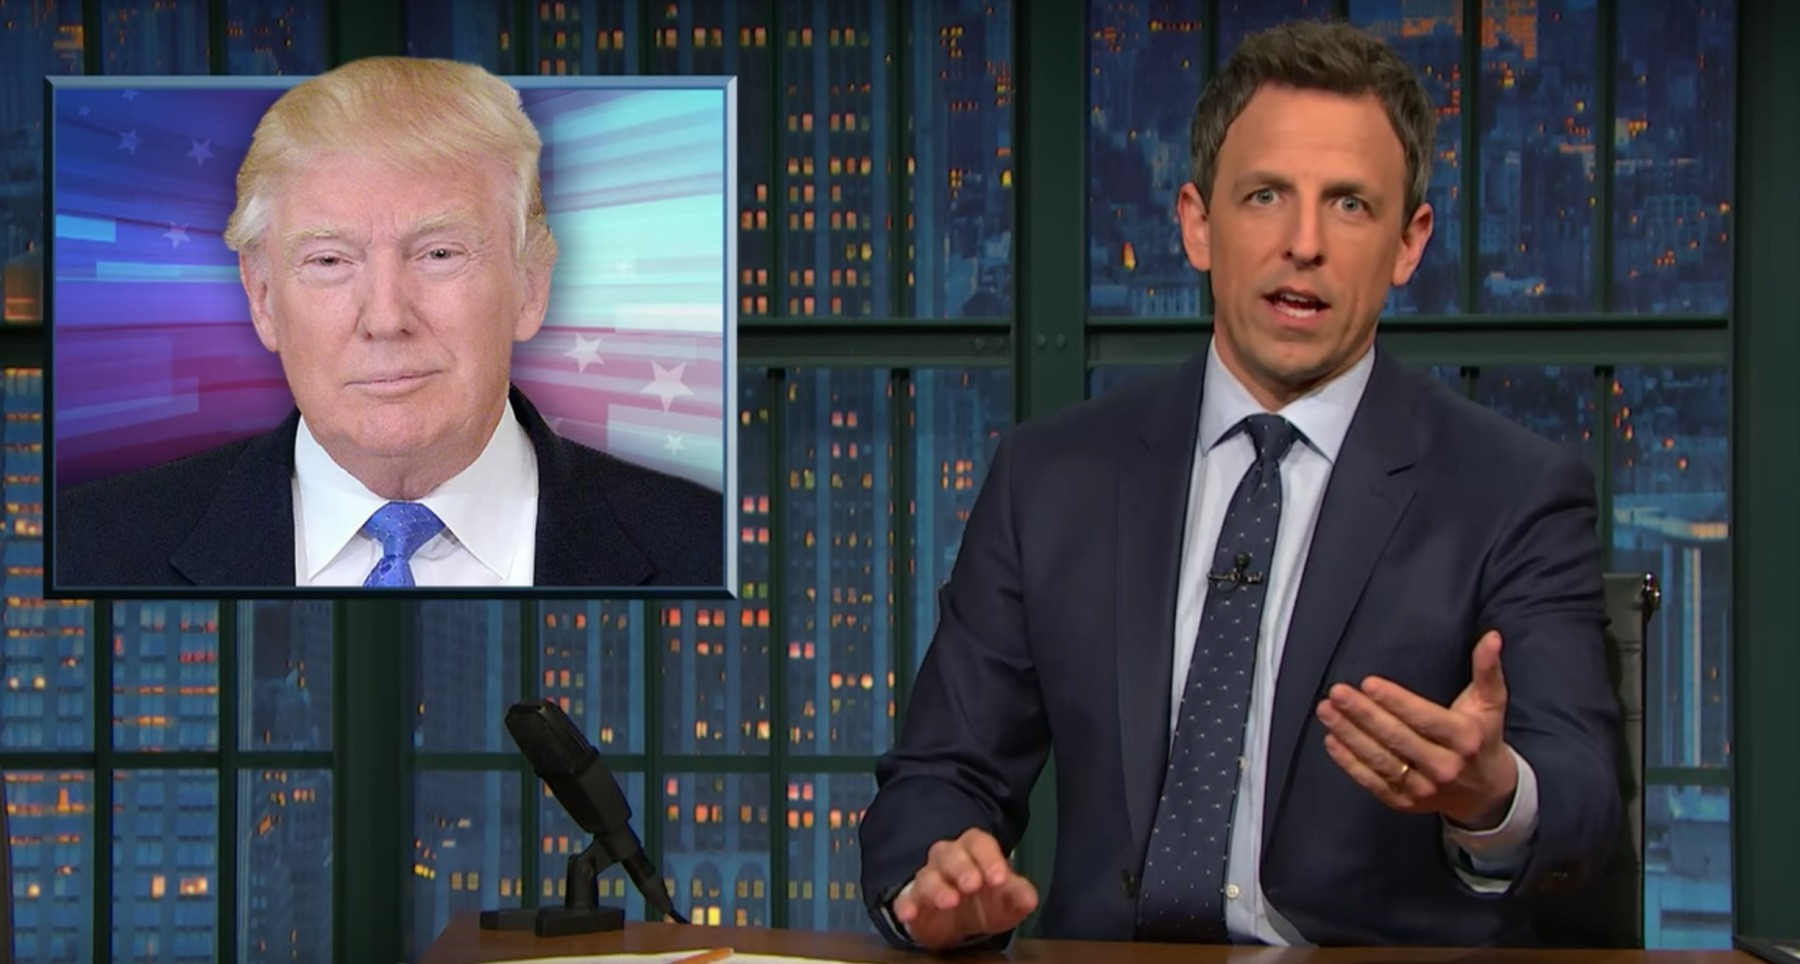 Seth Meyers Dissects the GOP's Health Care Replacement